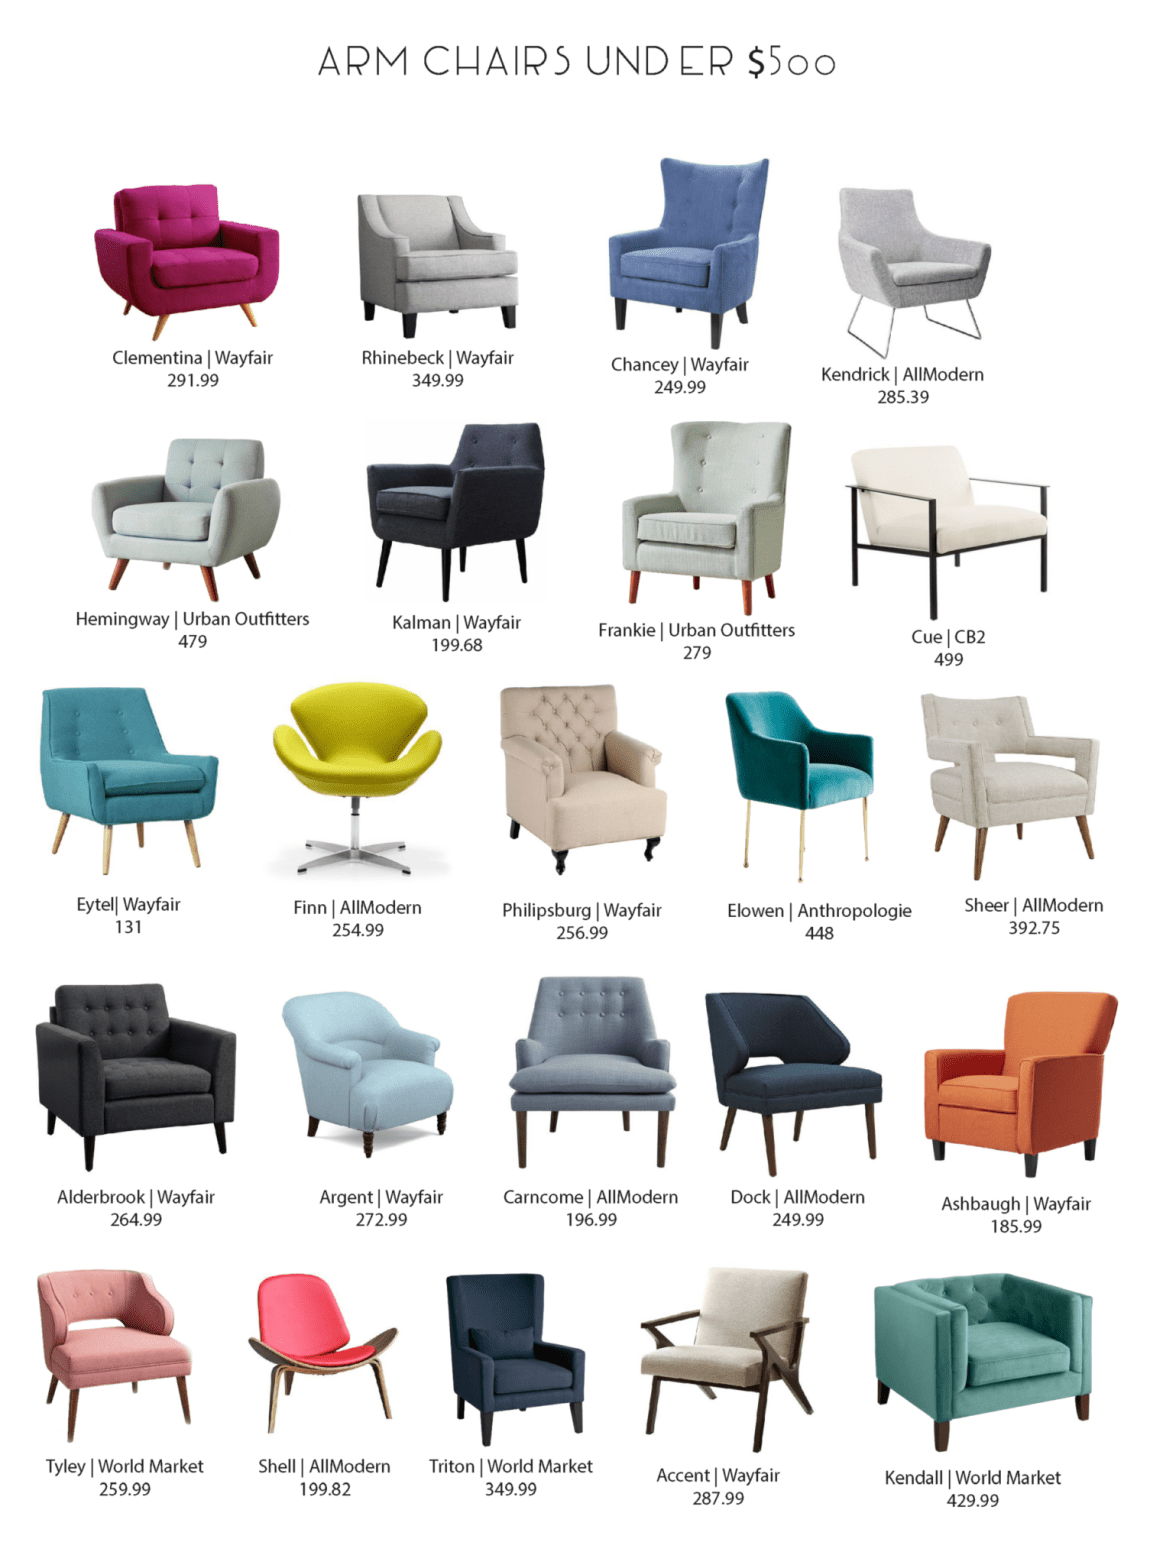 Affordable Stylish Arm Chair Options